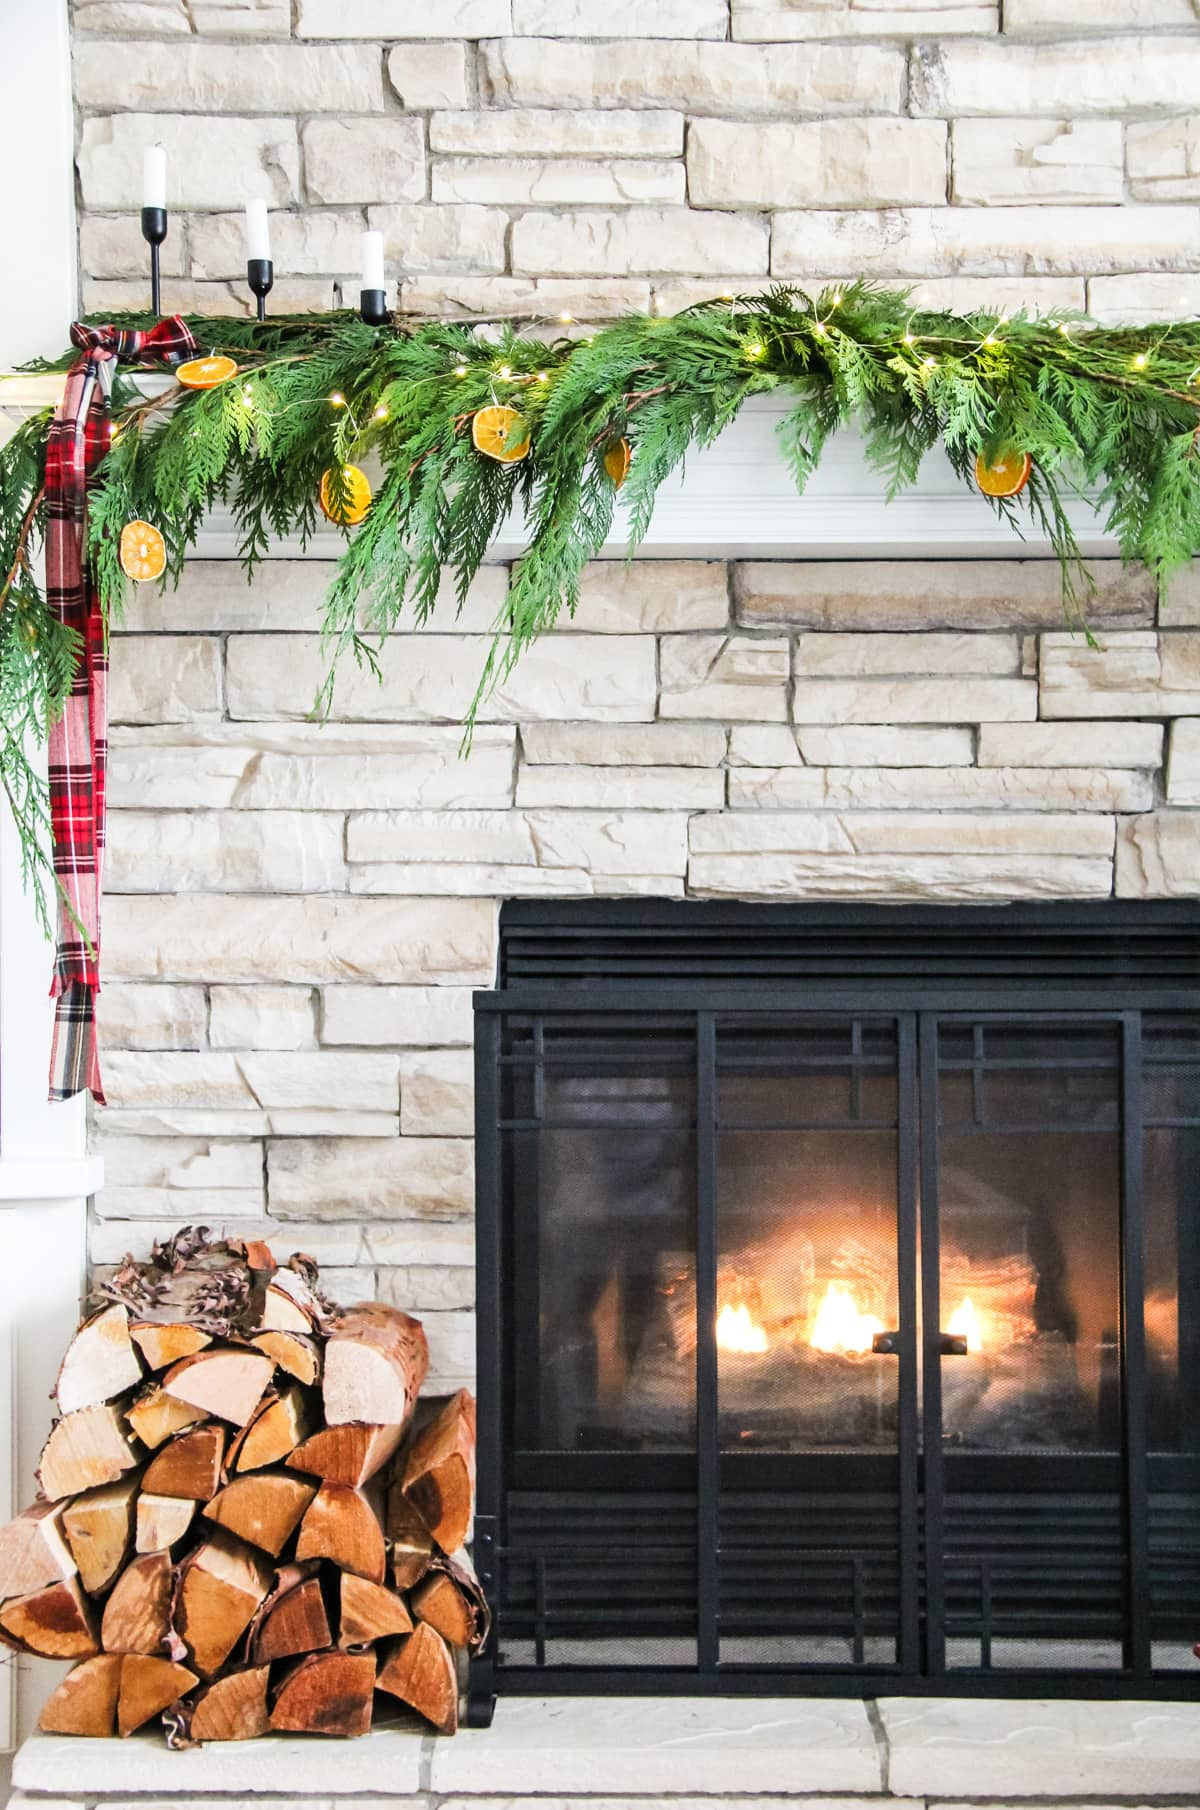 a view of half of a fireplace mantel decorated with fresh cedar boughs, orange slice ornaments, string fairy lights and plaid ribbon. With a fire roaring in the fireplaces and a stack of wood on the left